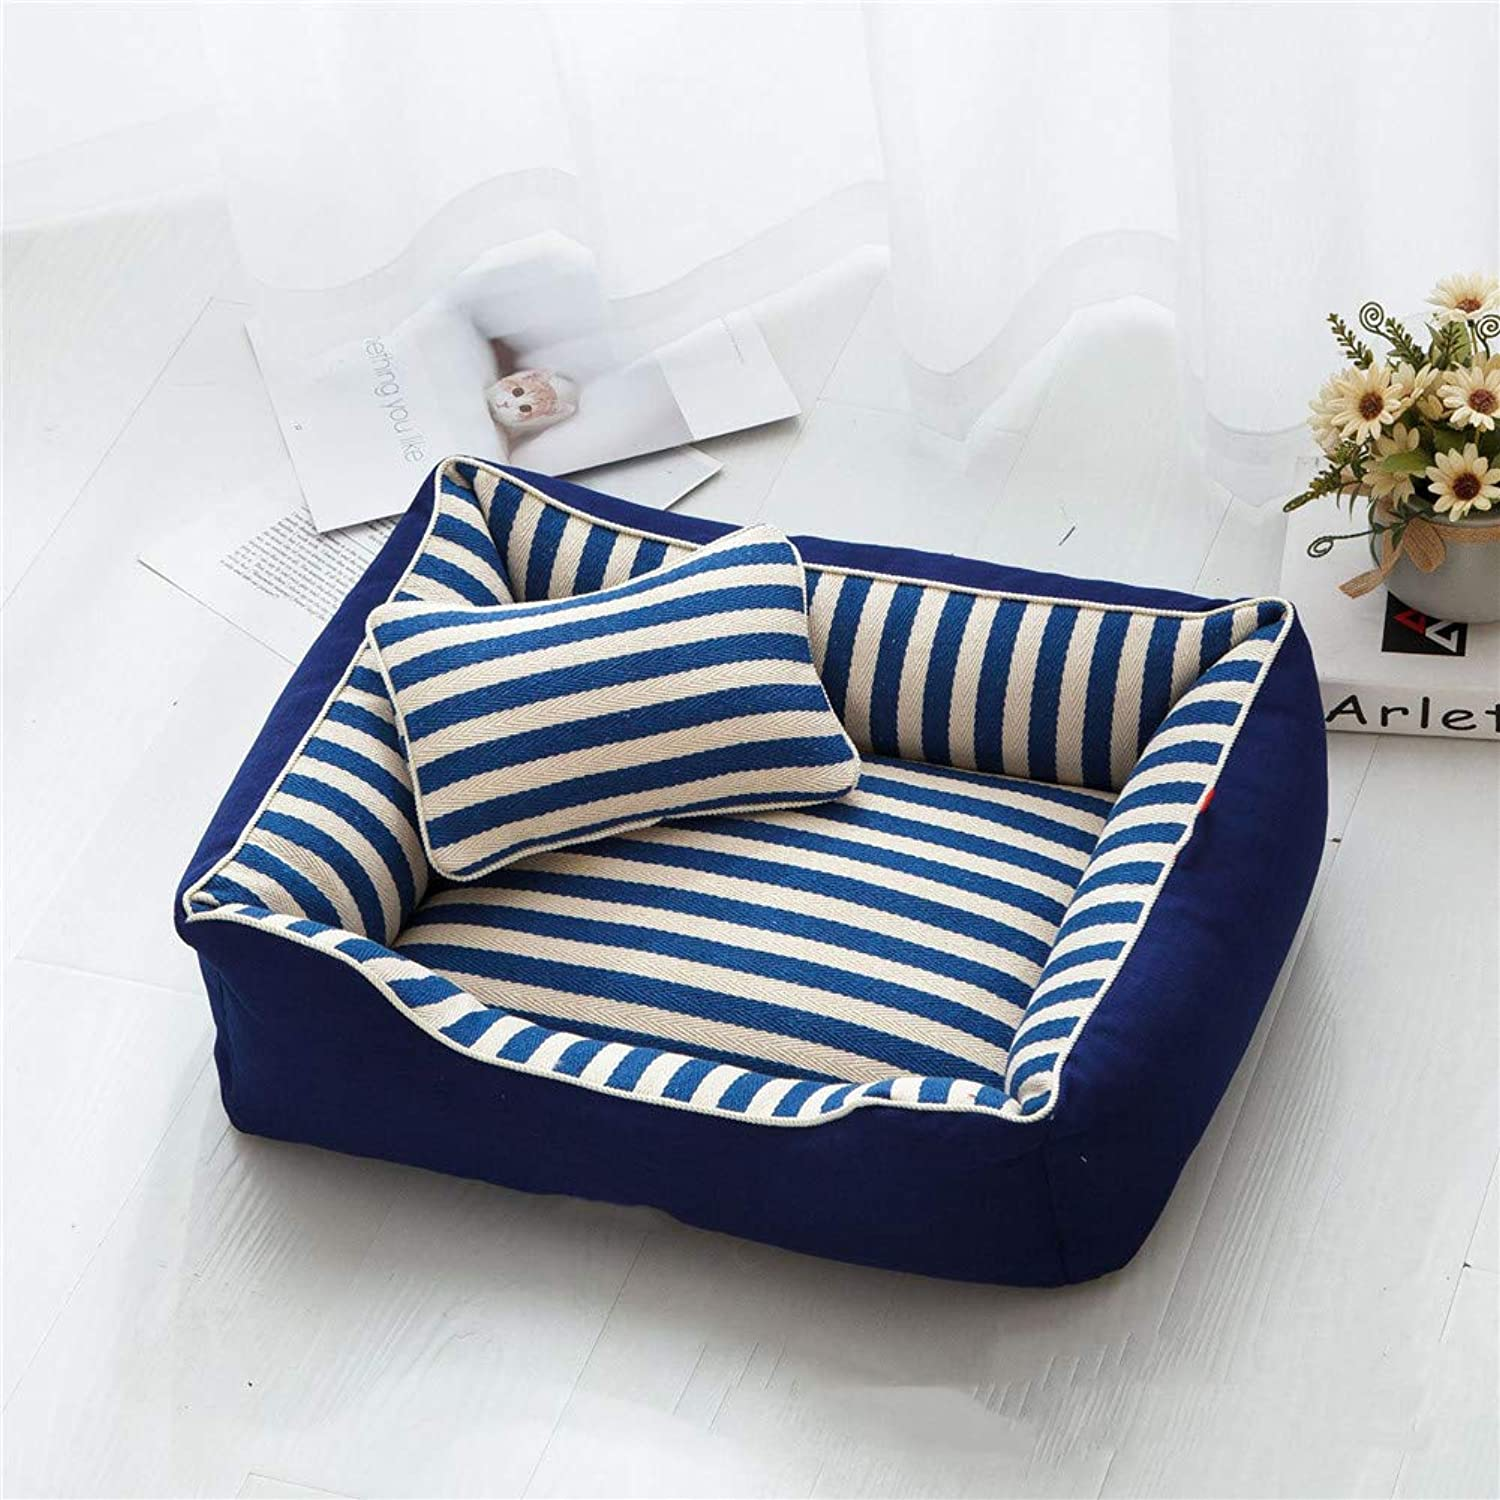 Dog Bed for Pets & Cats,Cat and Dog House Bed,Improved Sleep Warming Cozy Inner Cushion for Home, Crate & Travel,bluee,M